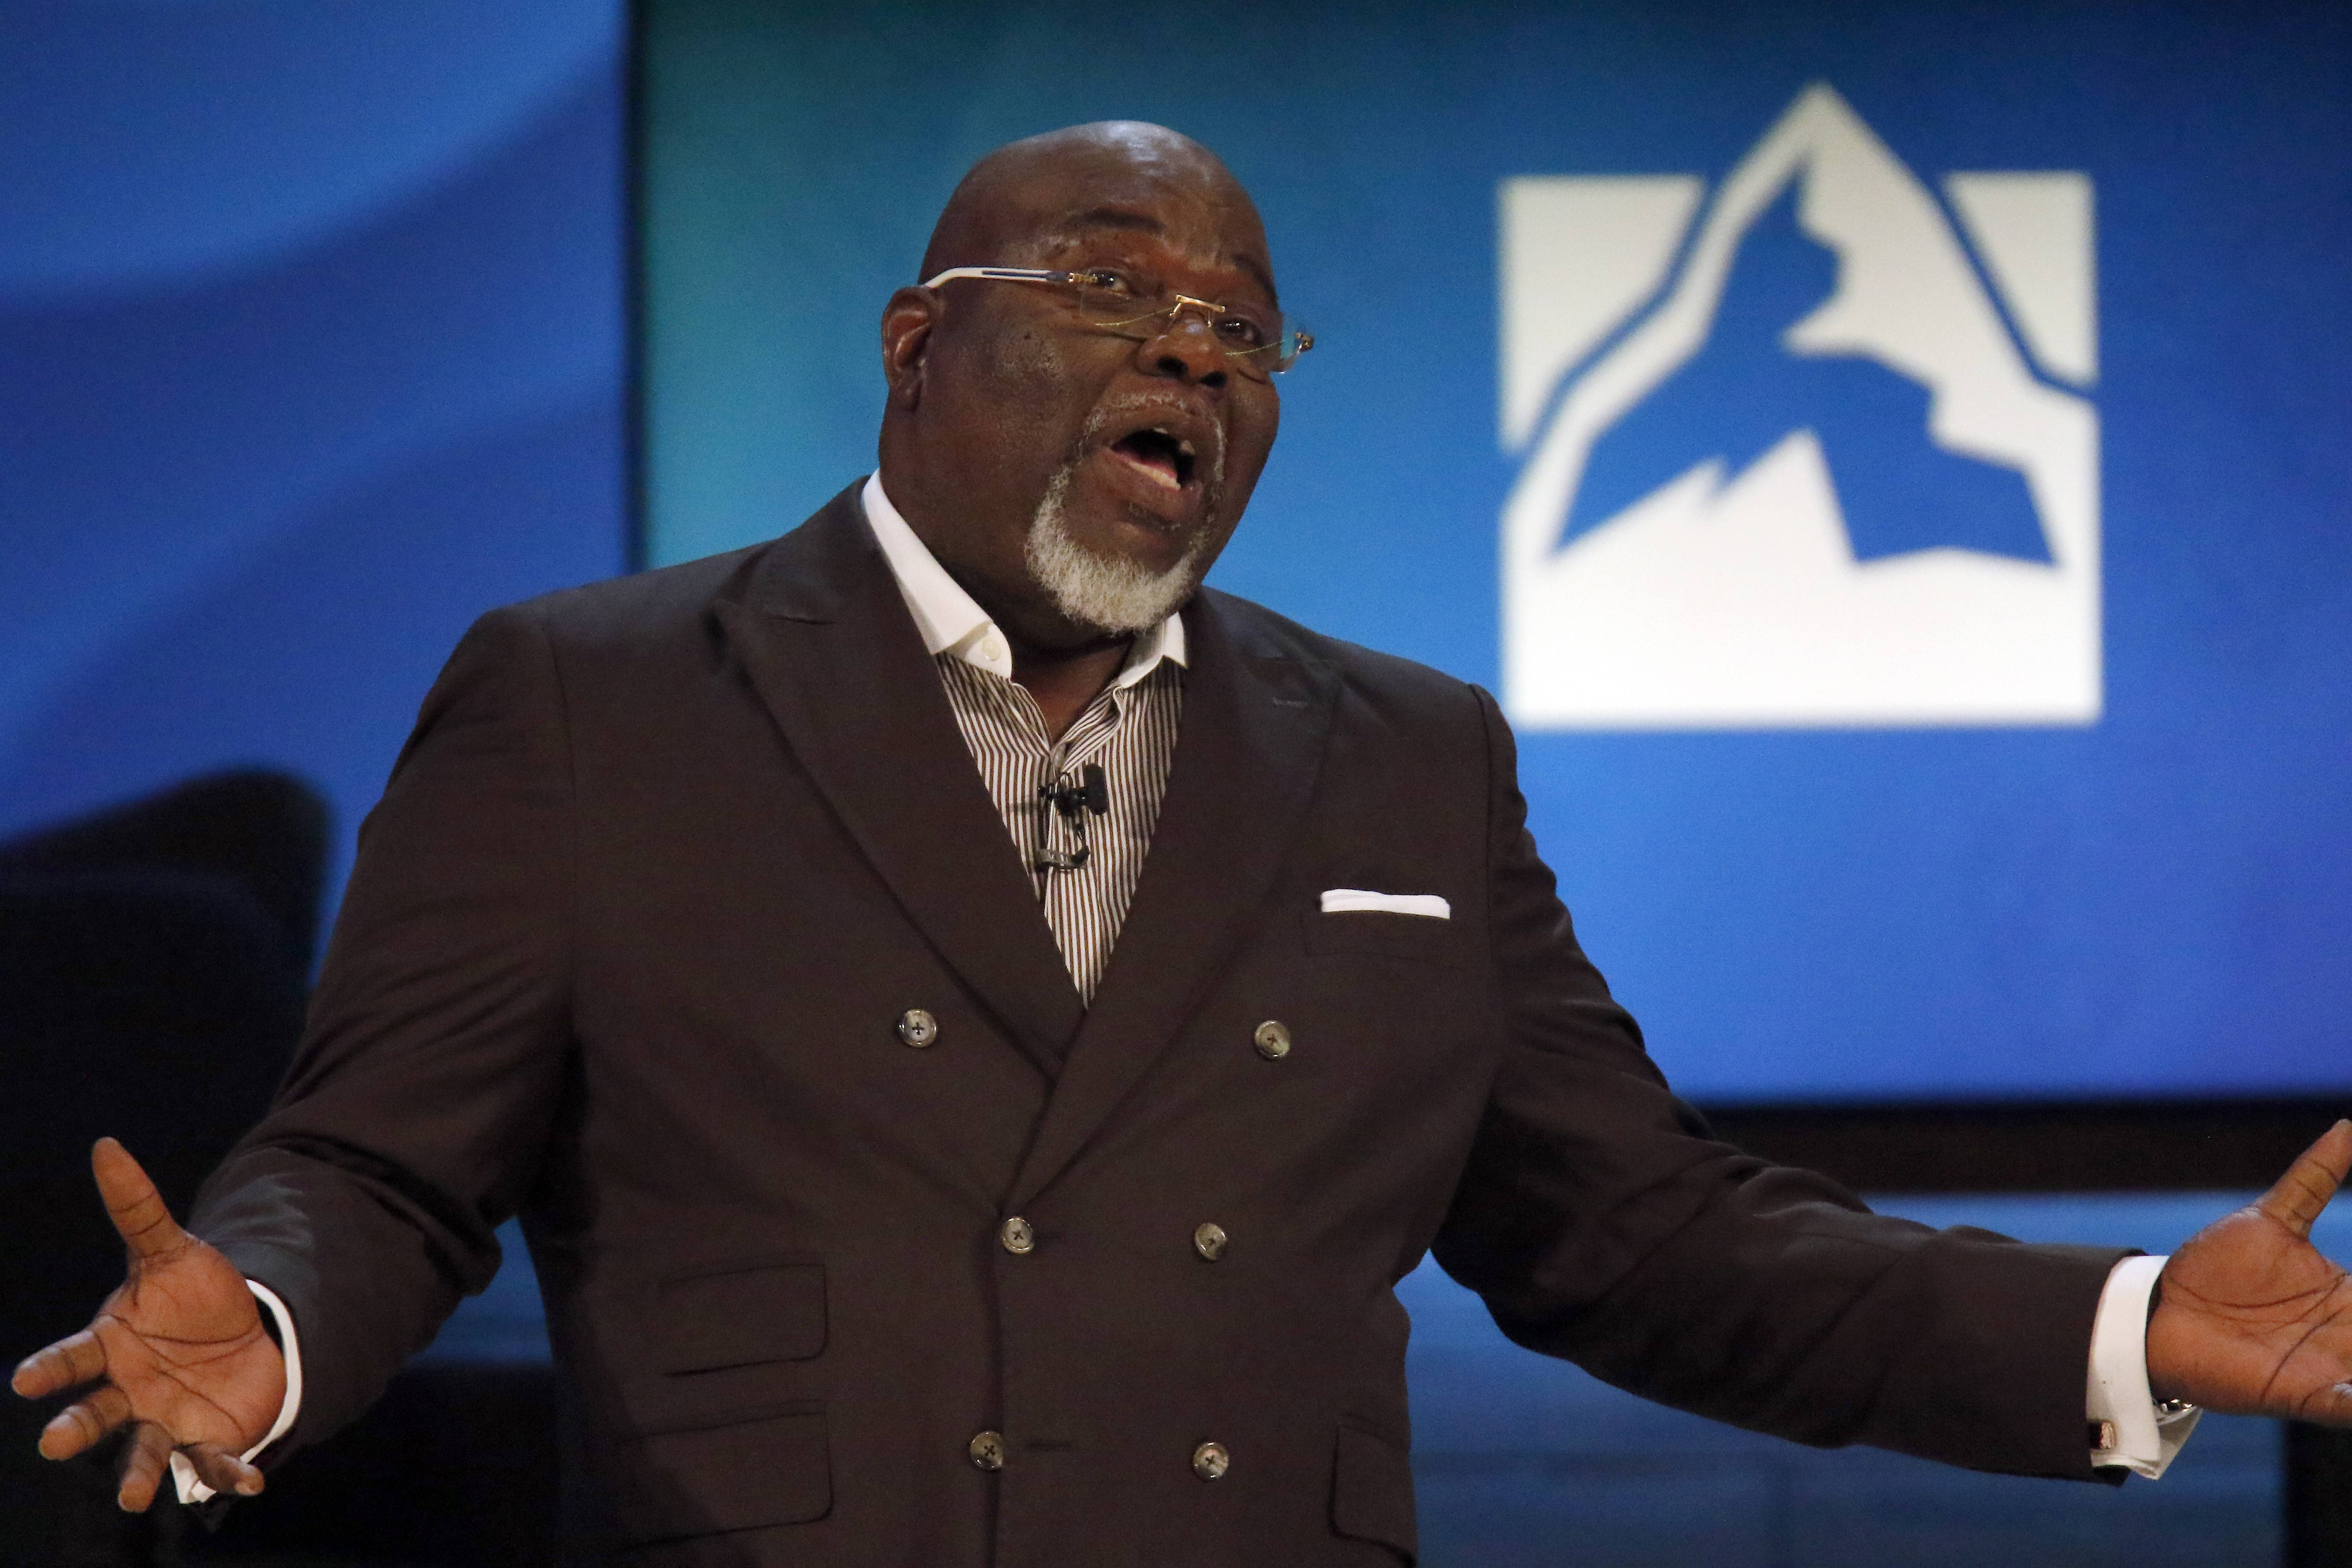 Bishop T.D. Jakes, senior pastor of the 30,000-member The Potter's House church in Dallas, provides inspiration for places fighting problems at the 23rd annual Global Leadership Summit at Willow Creek Community Church last week in South Barrington.